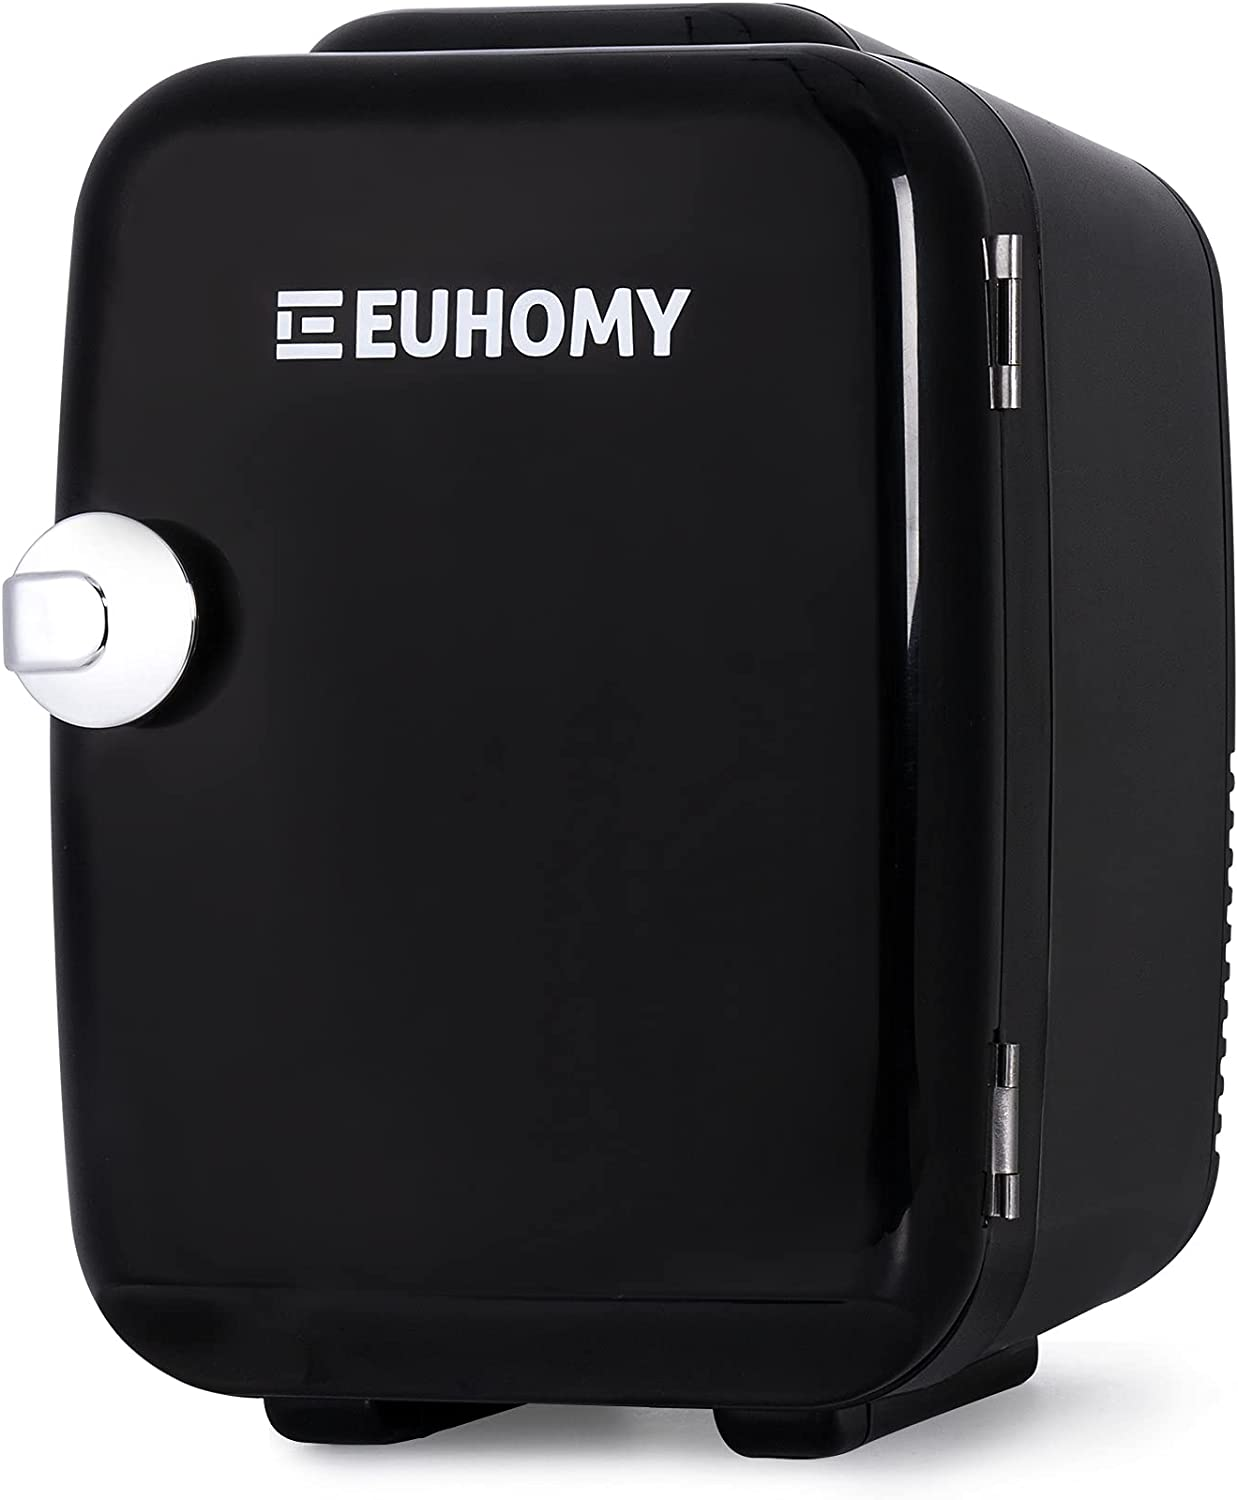 Euhomy Mini fridge for bedroom, 4 L / 6 cans Portable fridge & Electric Cooler and Warmer, Car fridge with AC/DC, Small fridge for room, office, dorm. Mini fridge for skin care and cosmetics.(Black)